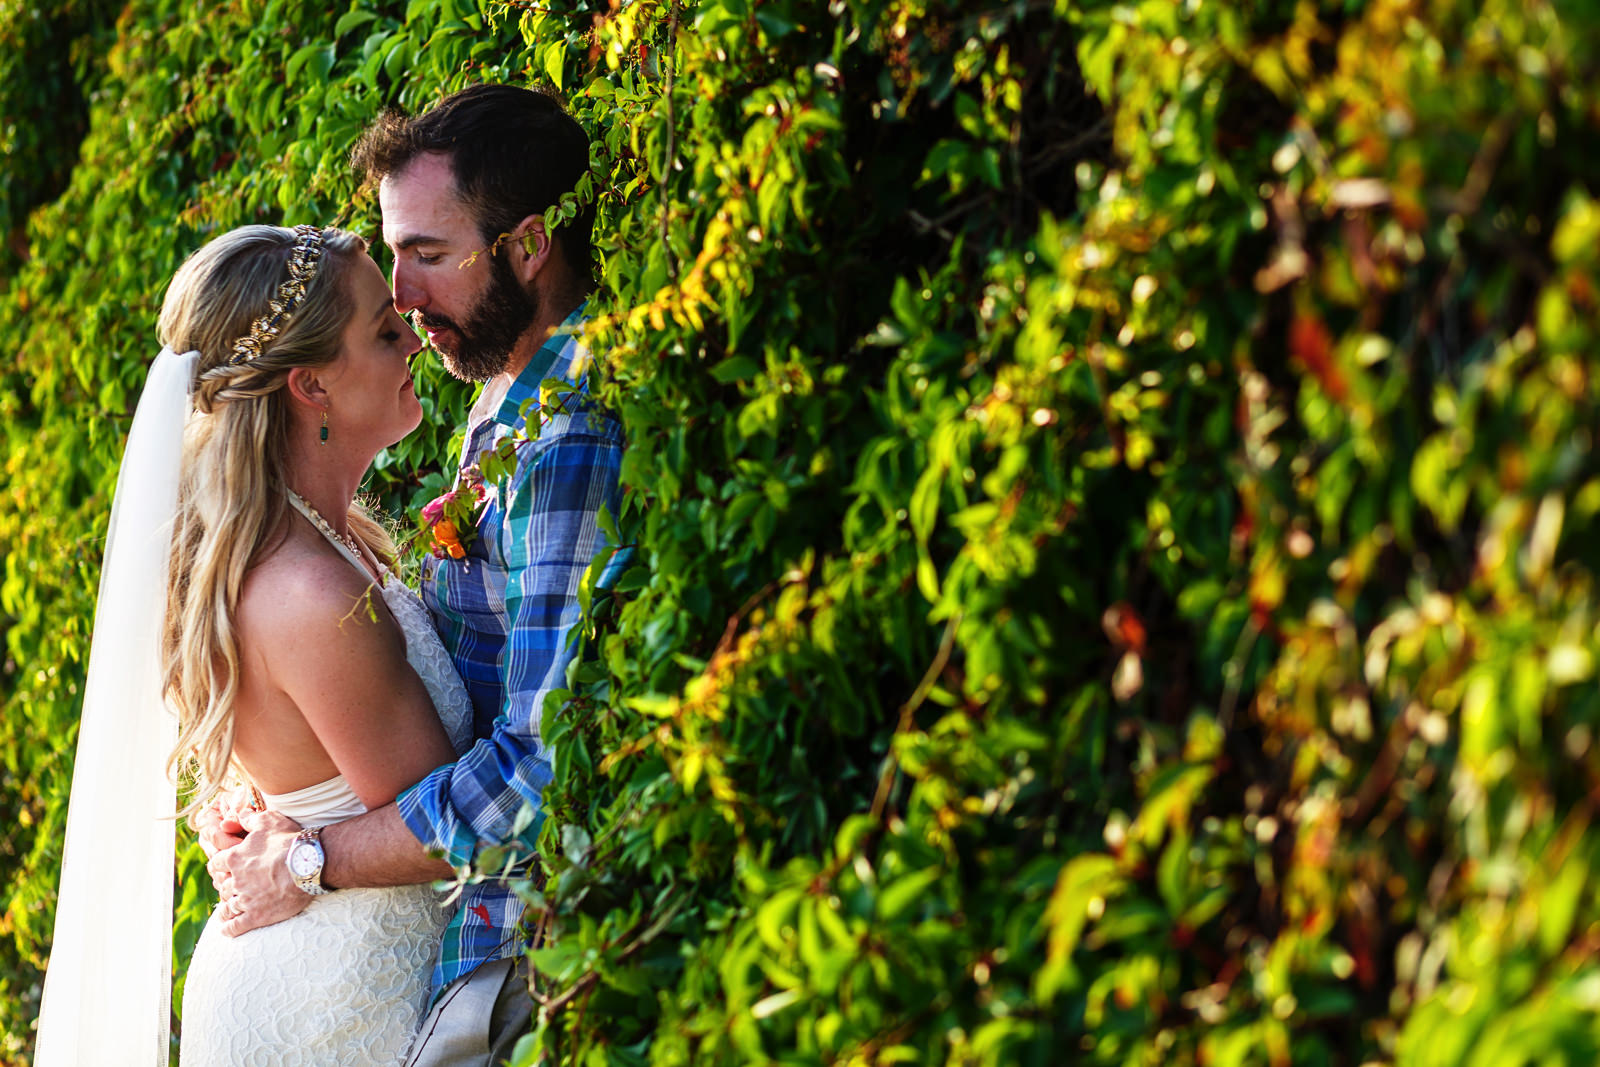 Bride and groom lean against a wall of bushes